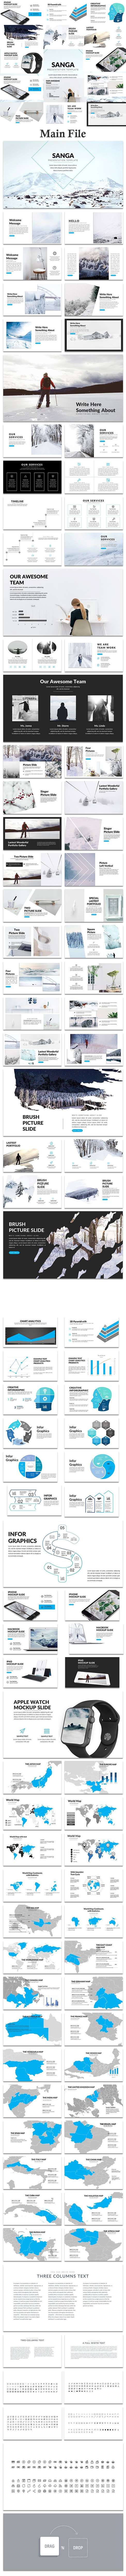 Sanga - Creative PowerPoin Template - Creative #PowerPoint #Templates Download here: https://graphicriver.net/item/sanga-creative-powerpoin-template/19535983?ref=alena994